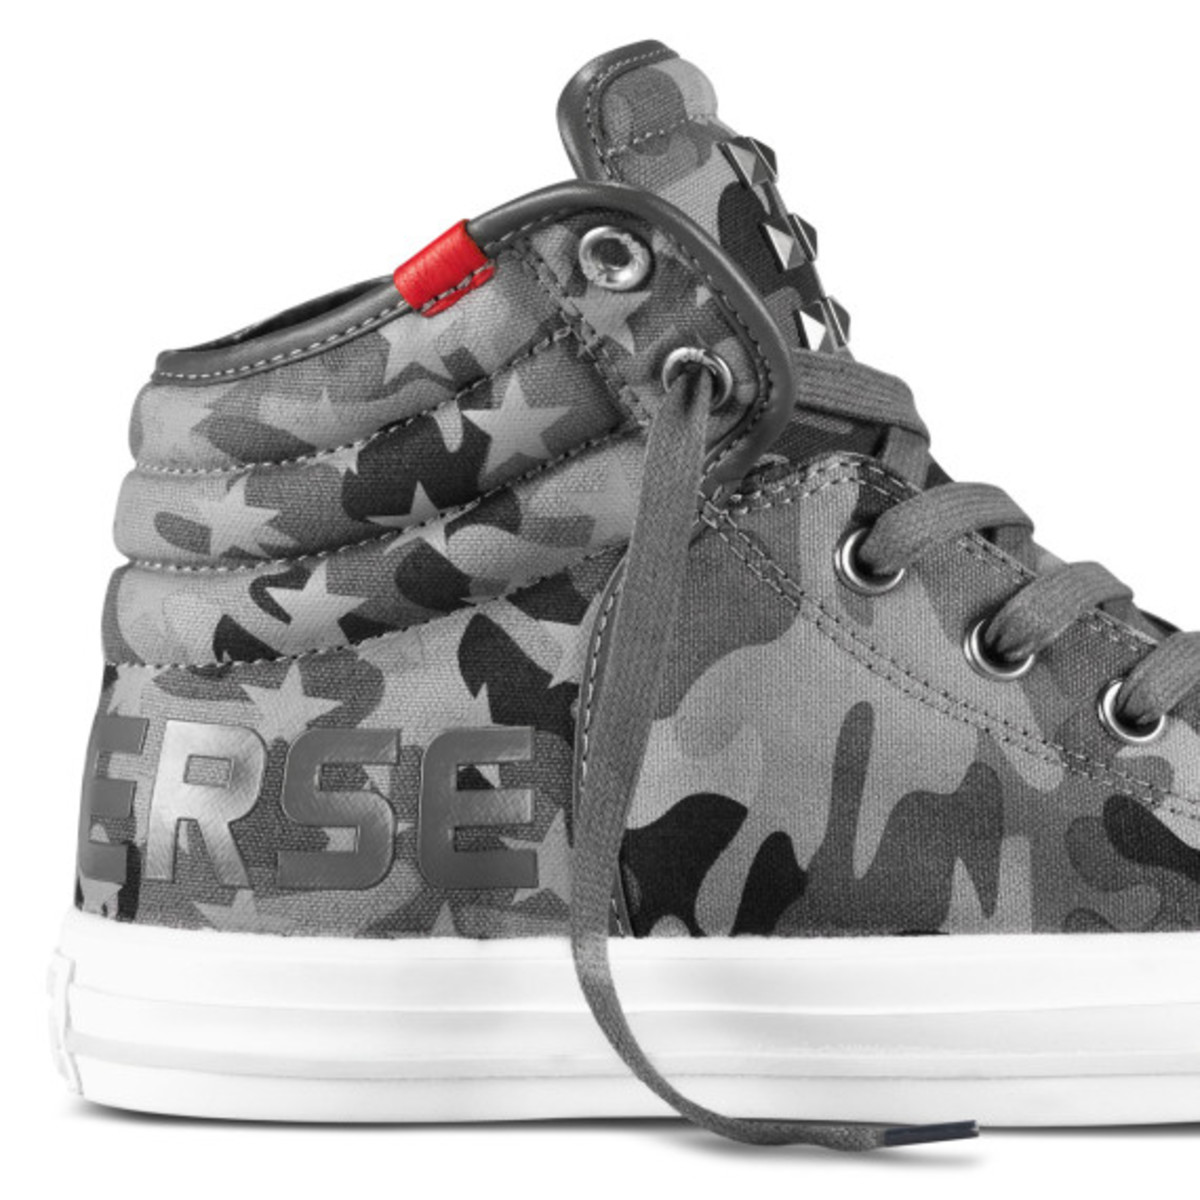 sports shoes 71d70 400a4 Wiz Khalifa x CONVERSE Chuck Taylor All Star Collection - 22